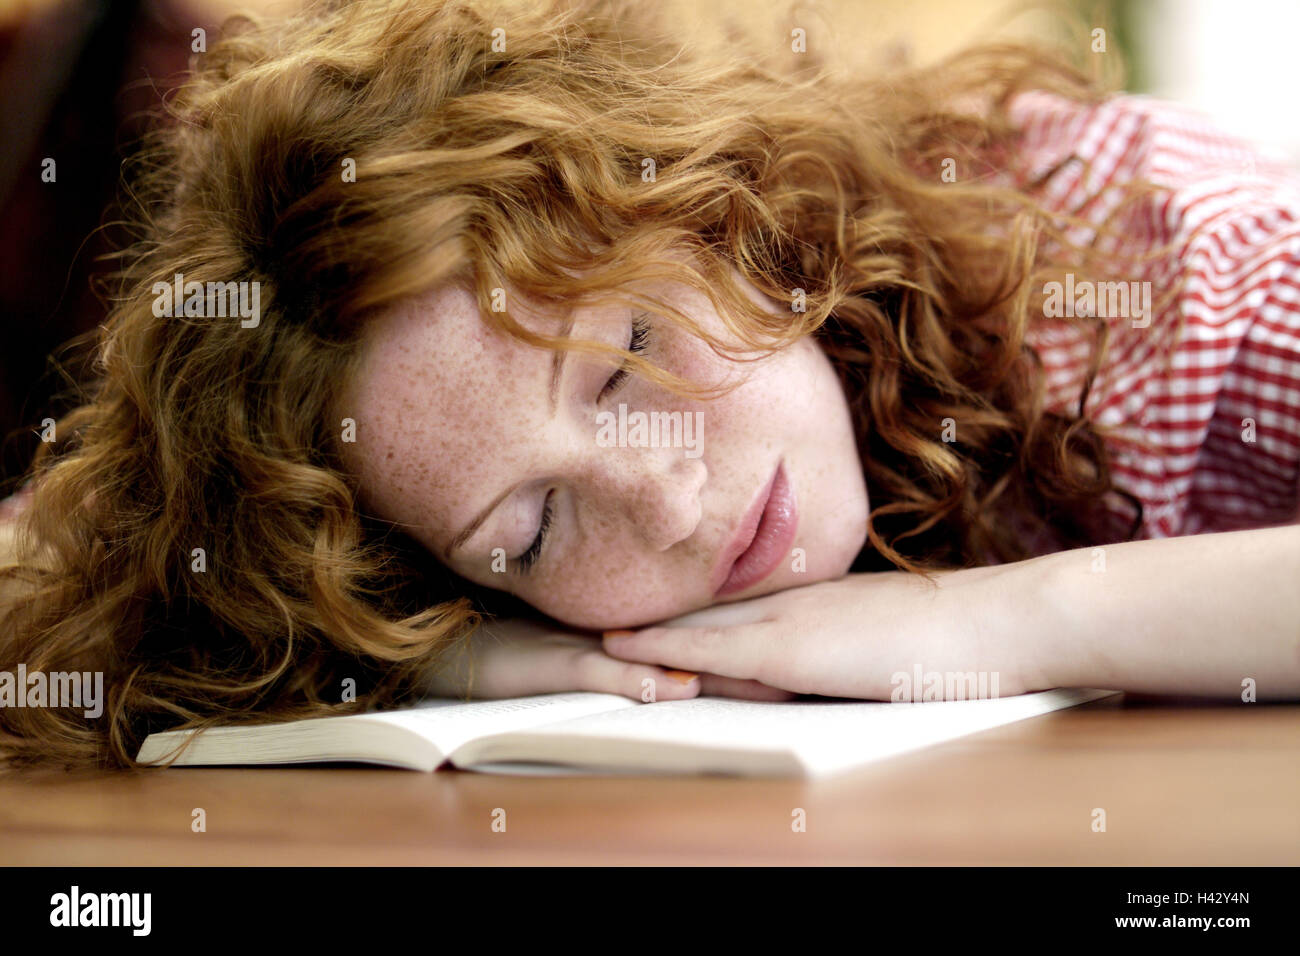 Table, detail, woman, young, book, head, hang up, sleep, portrait, redheads, red-haired, long-haired, curls, leisure - Stock Image